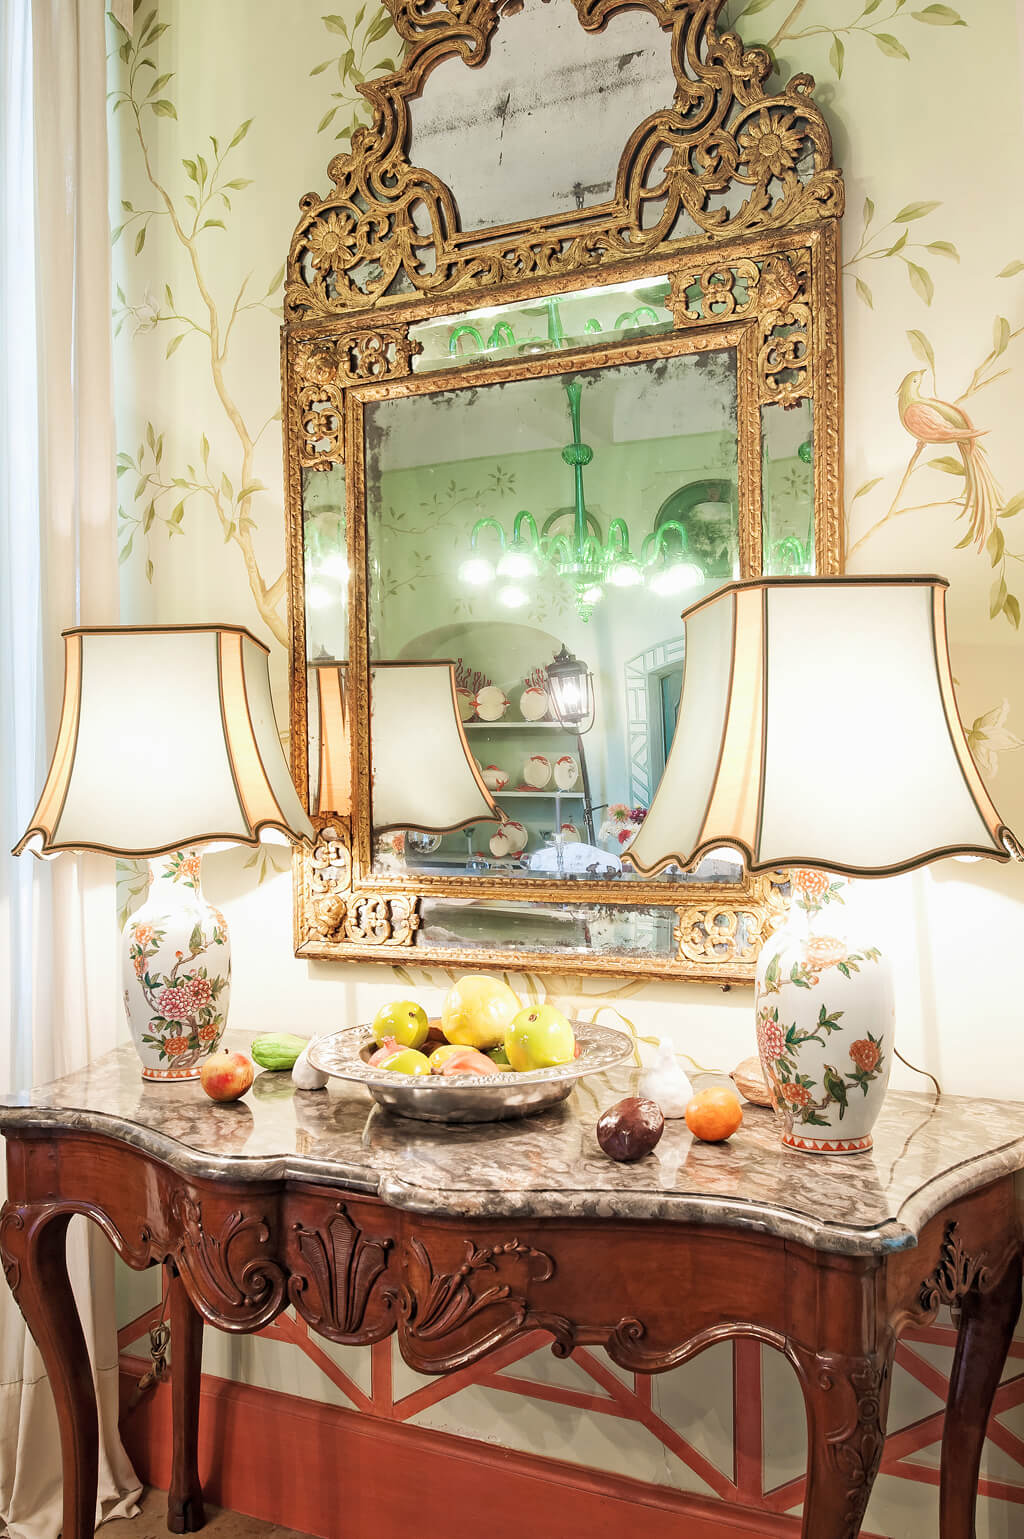 Decor  Travel  The French Chateau Mireille StRmyde